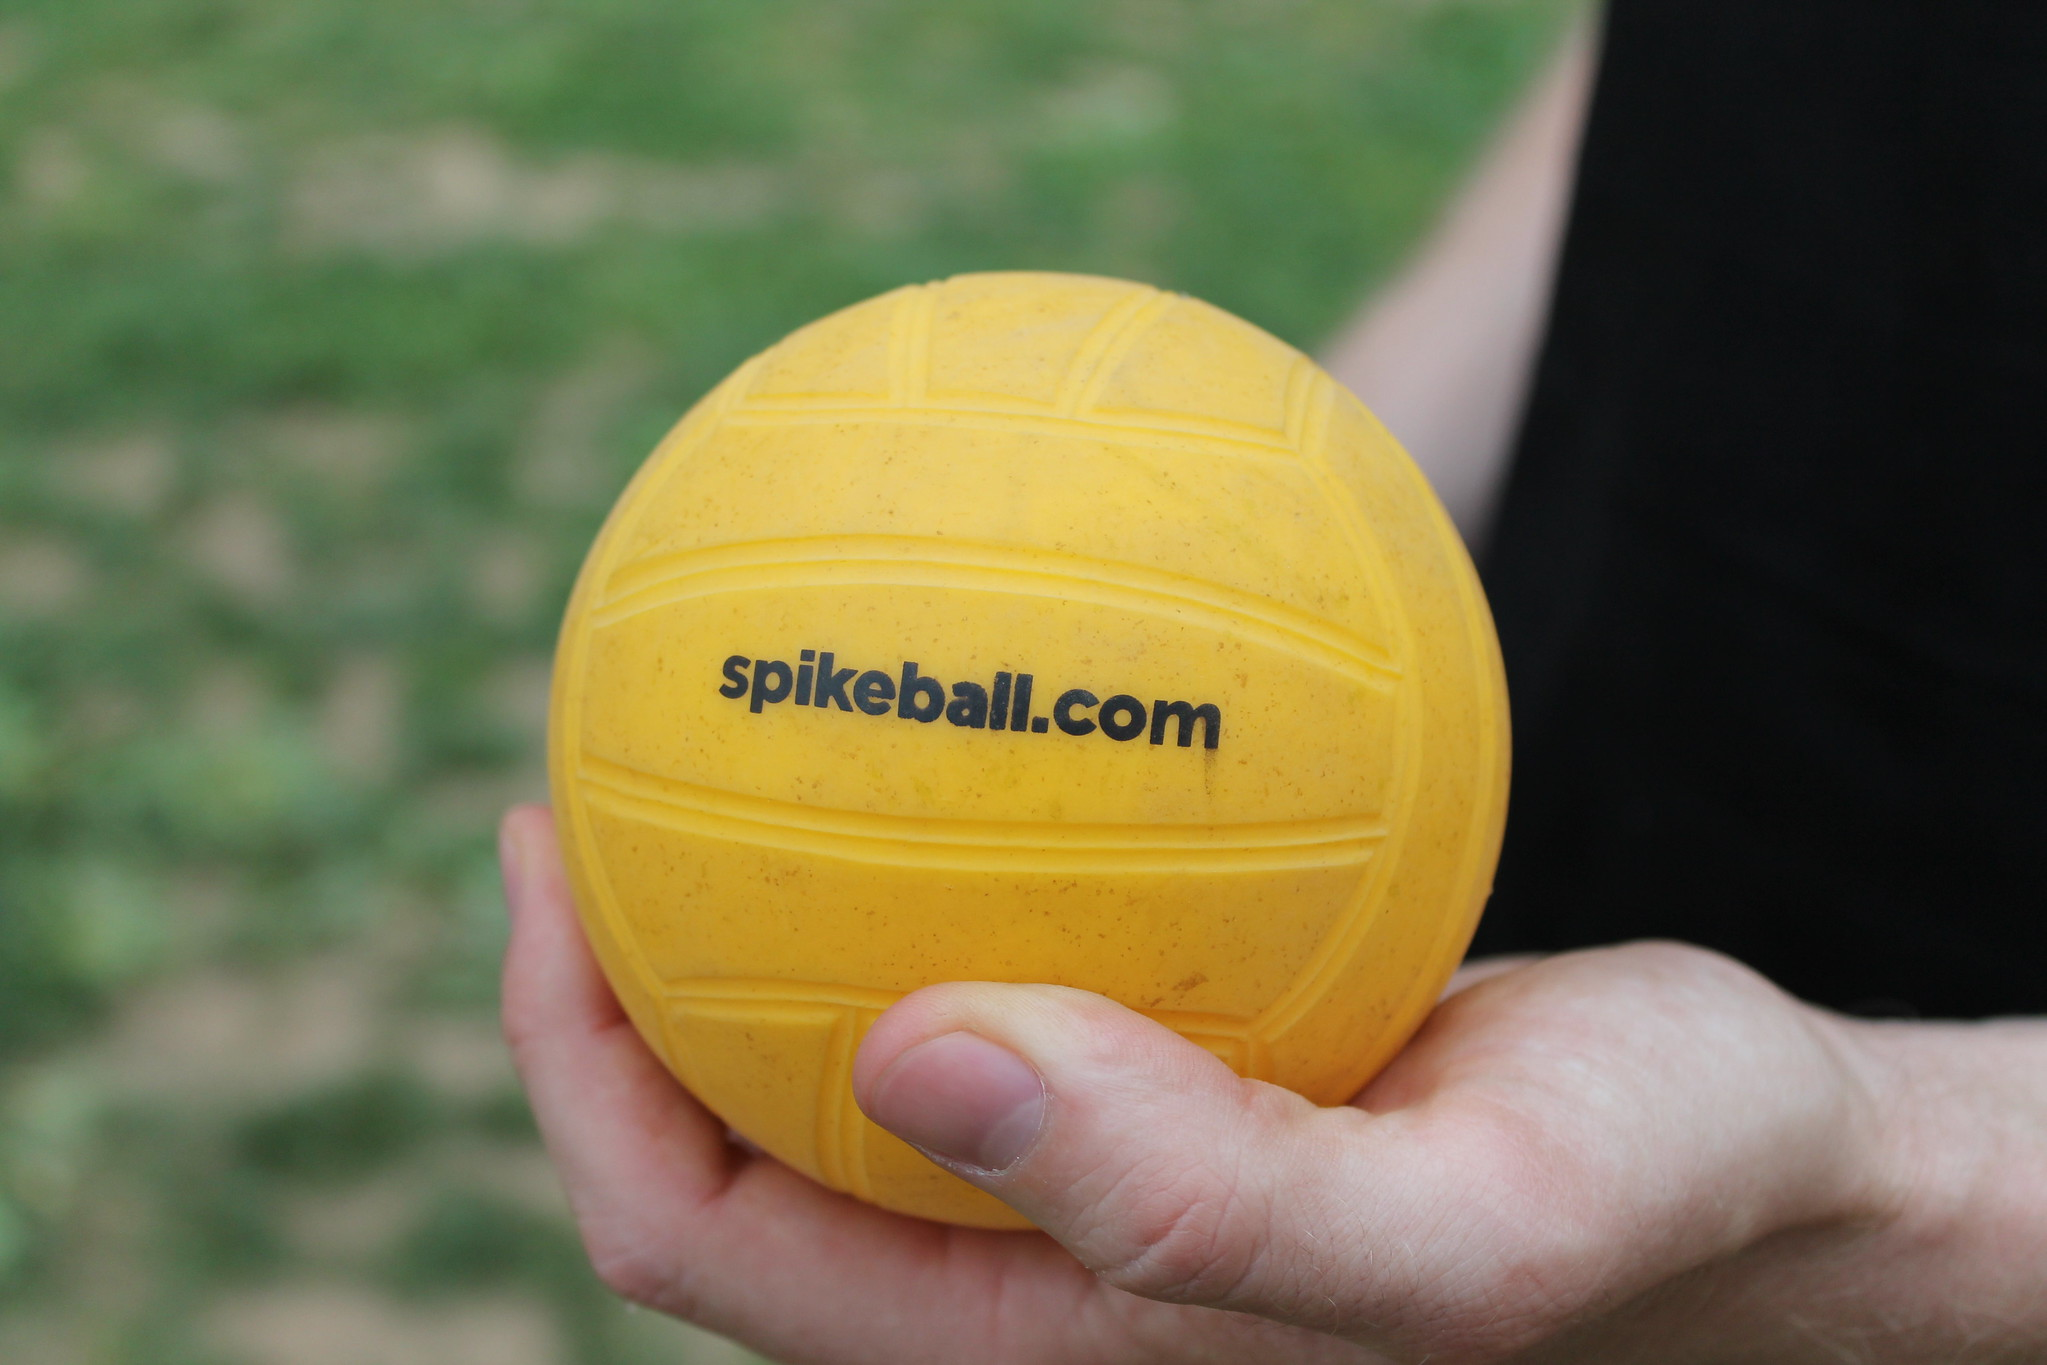 05.SpikeBall.Upper.MeridianHill.WDC.20May2012